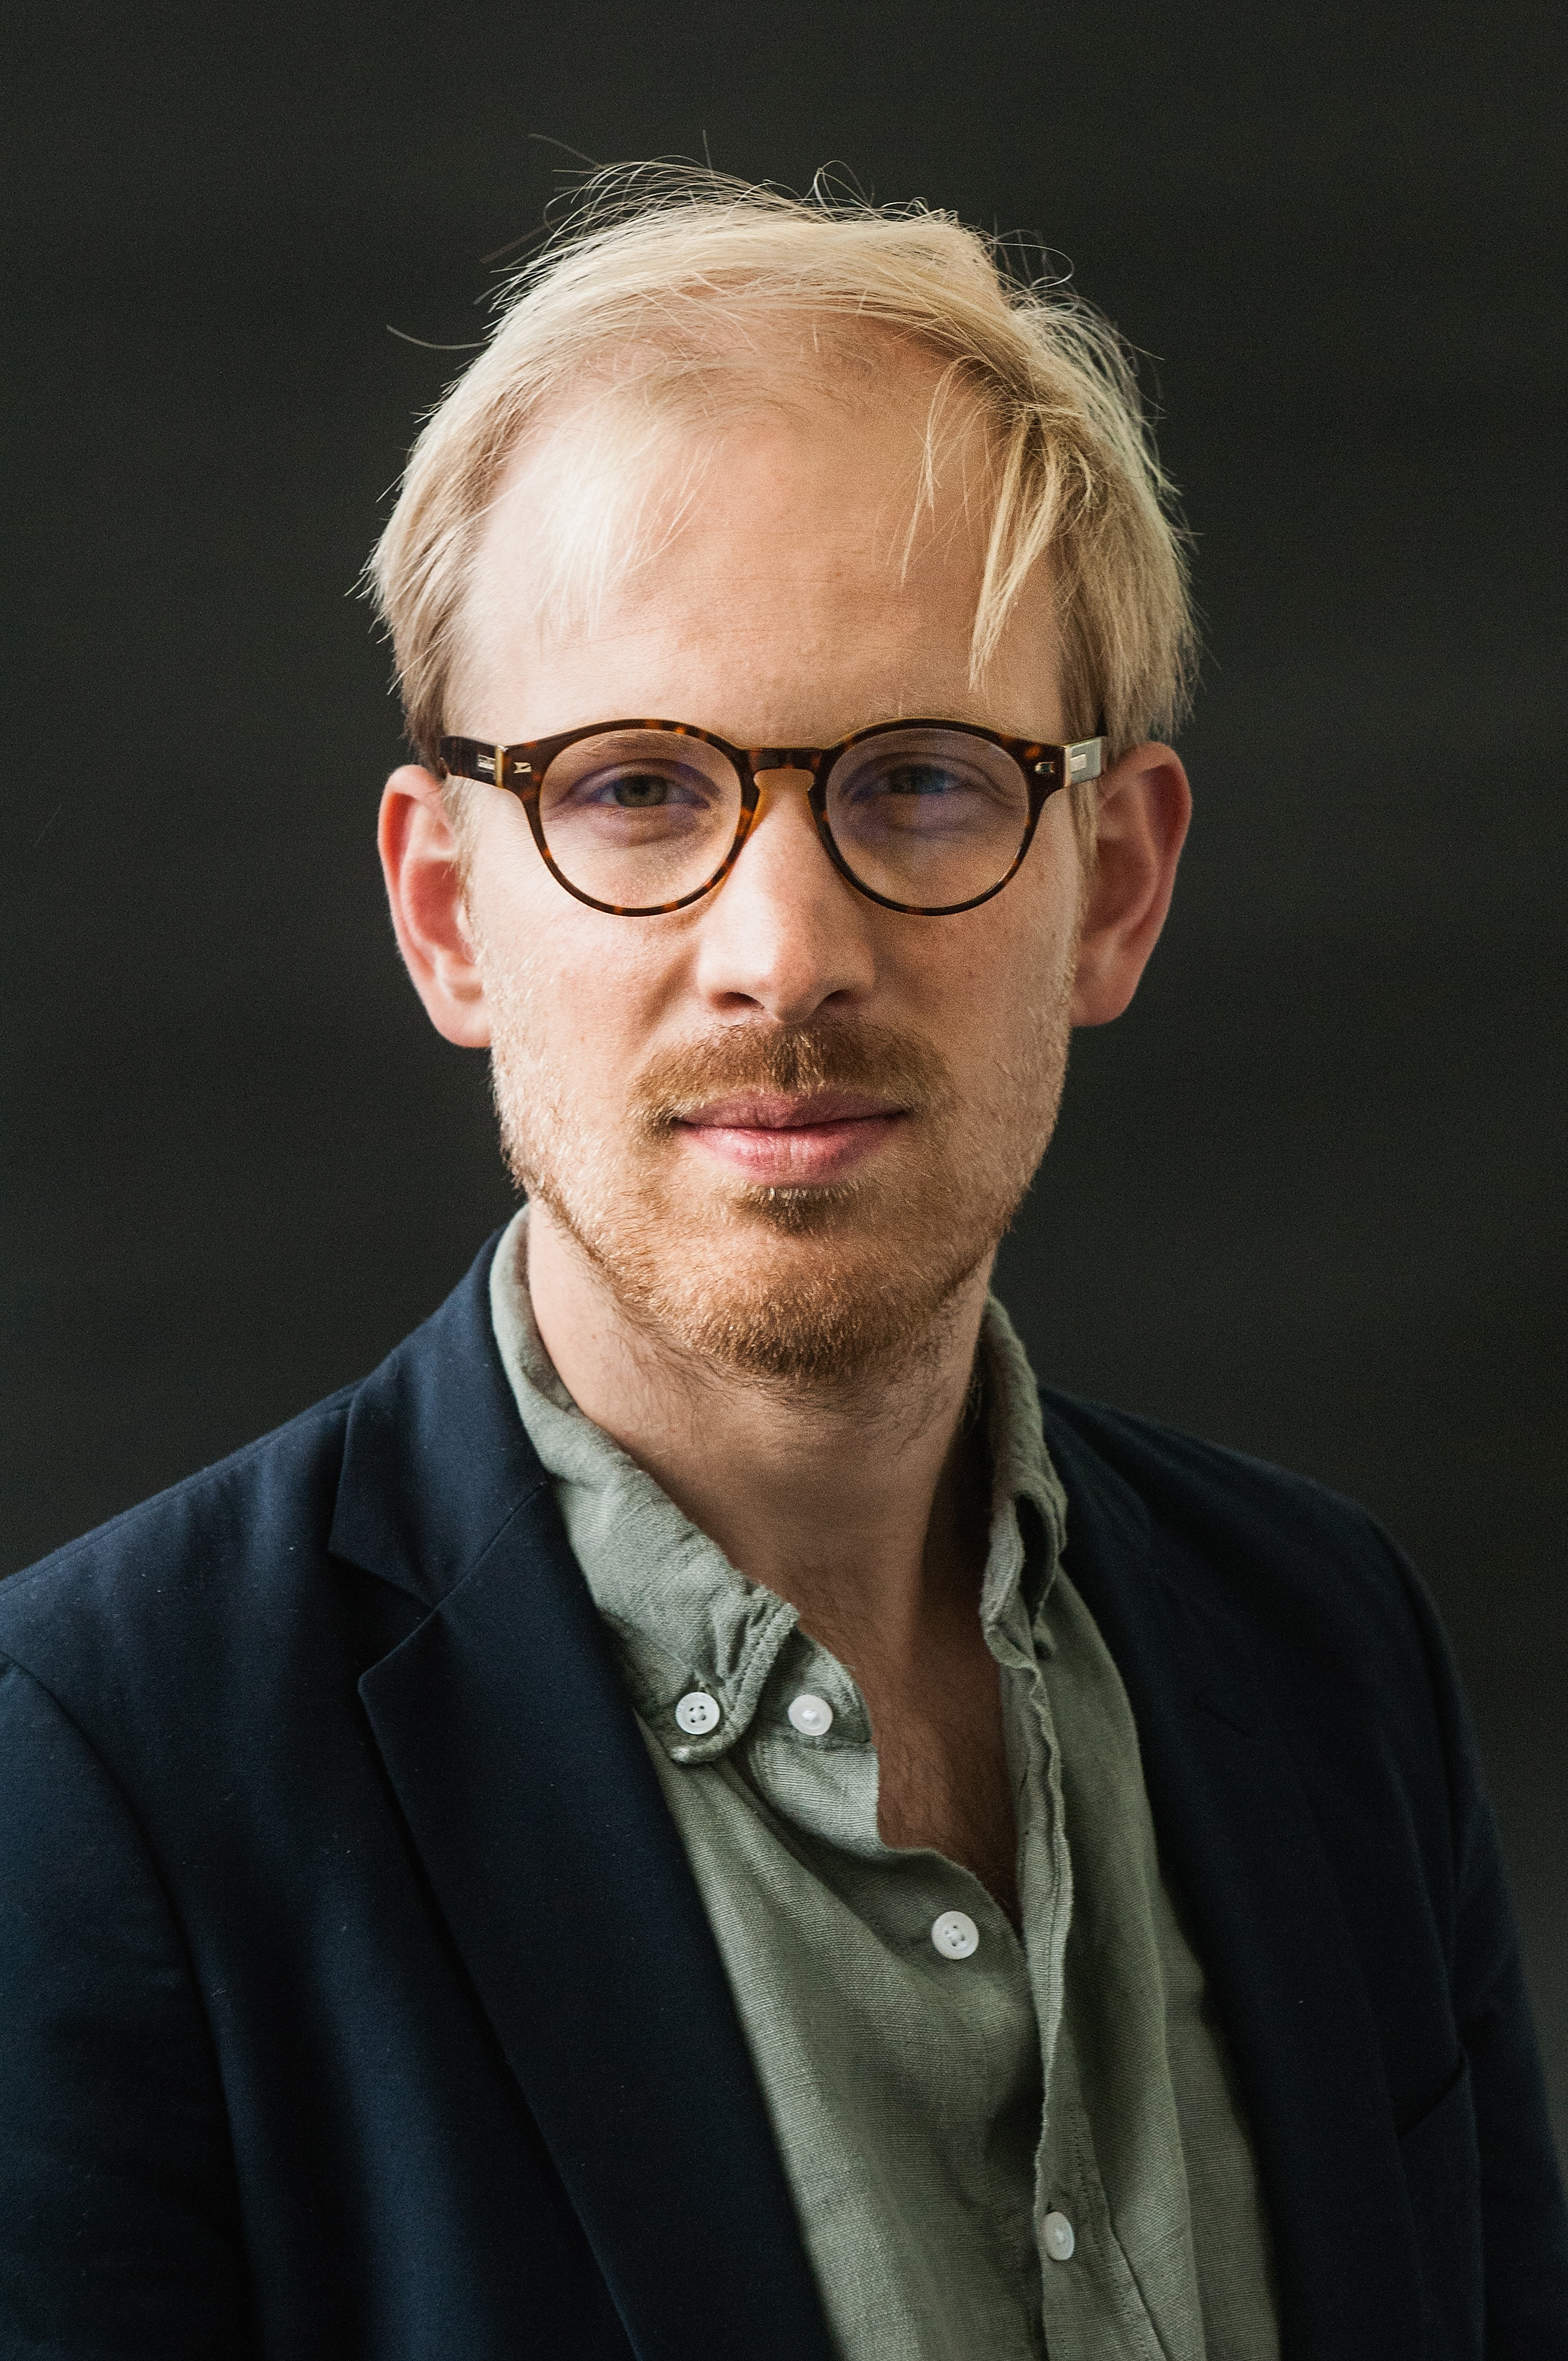 Dutch historian Rutger Bregman, author of 'Humankind'